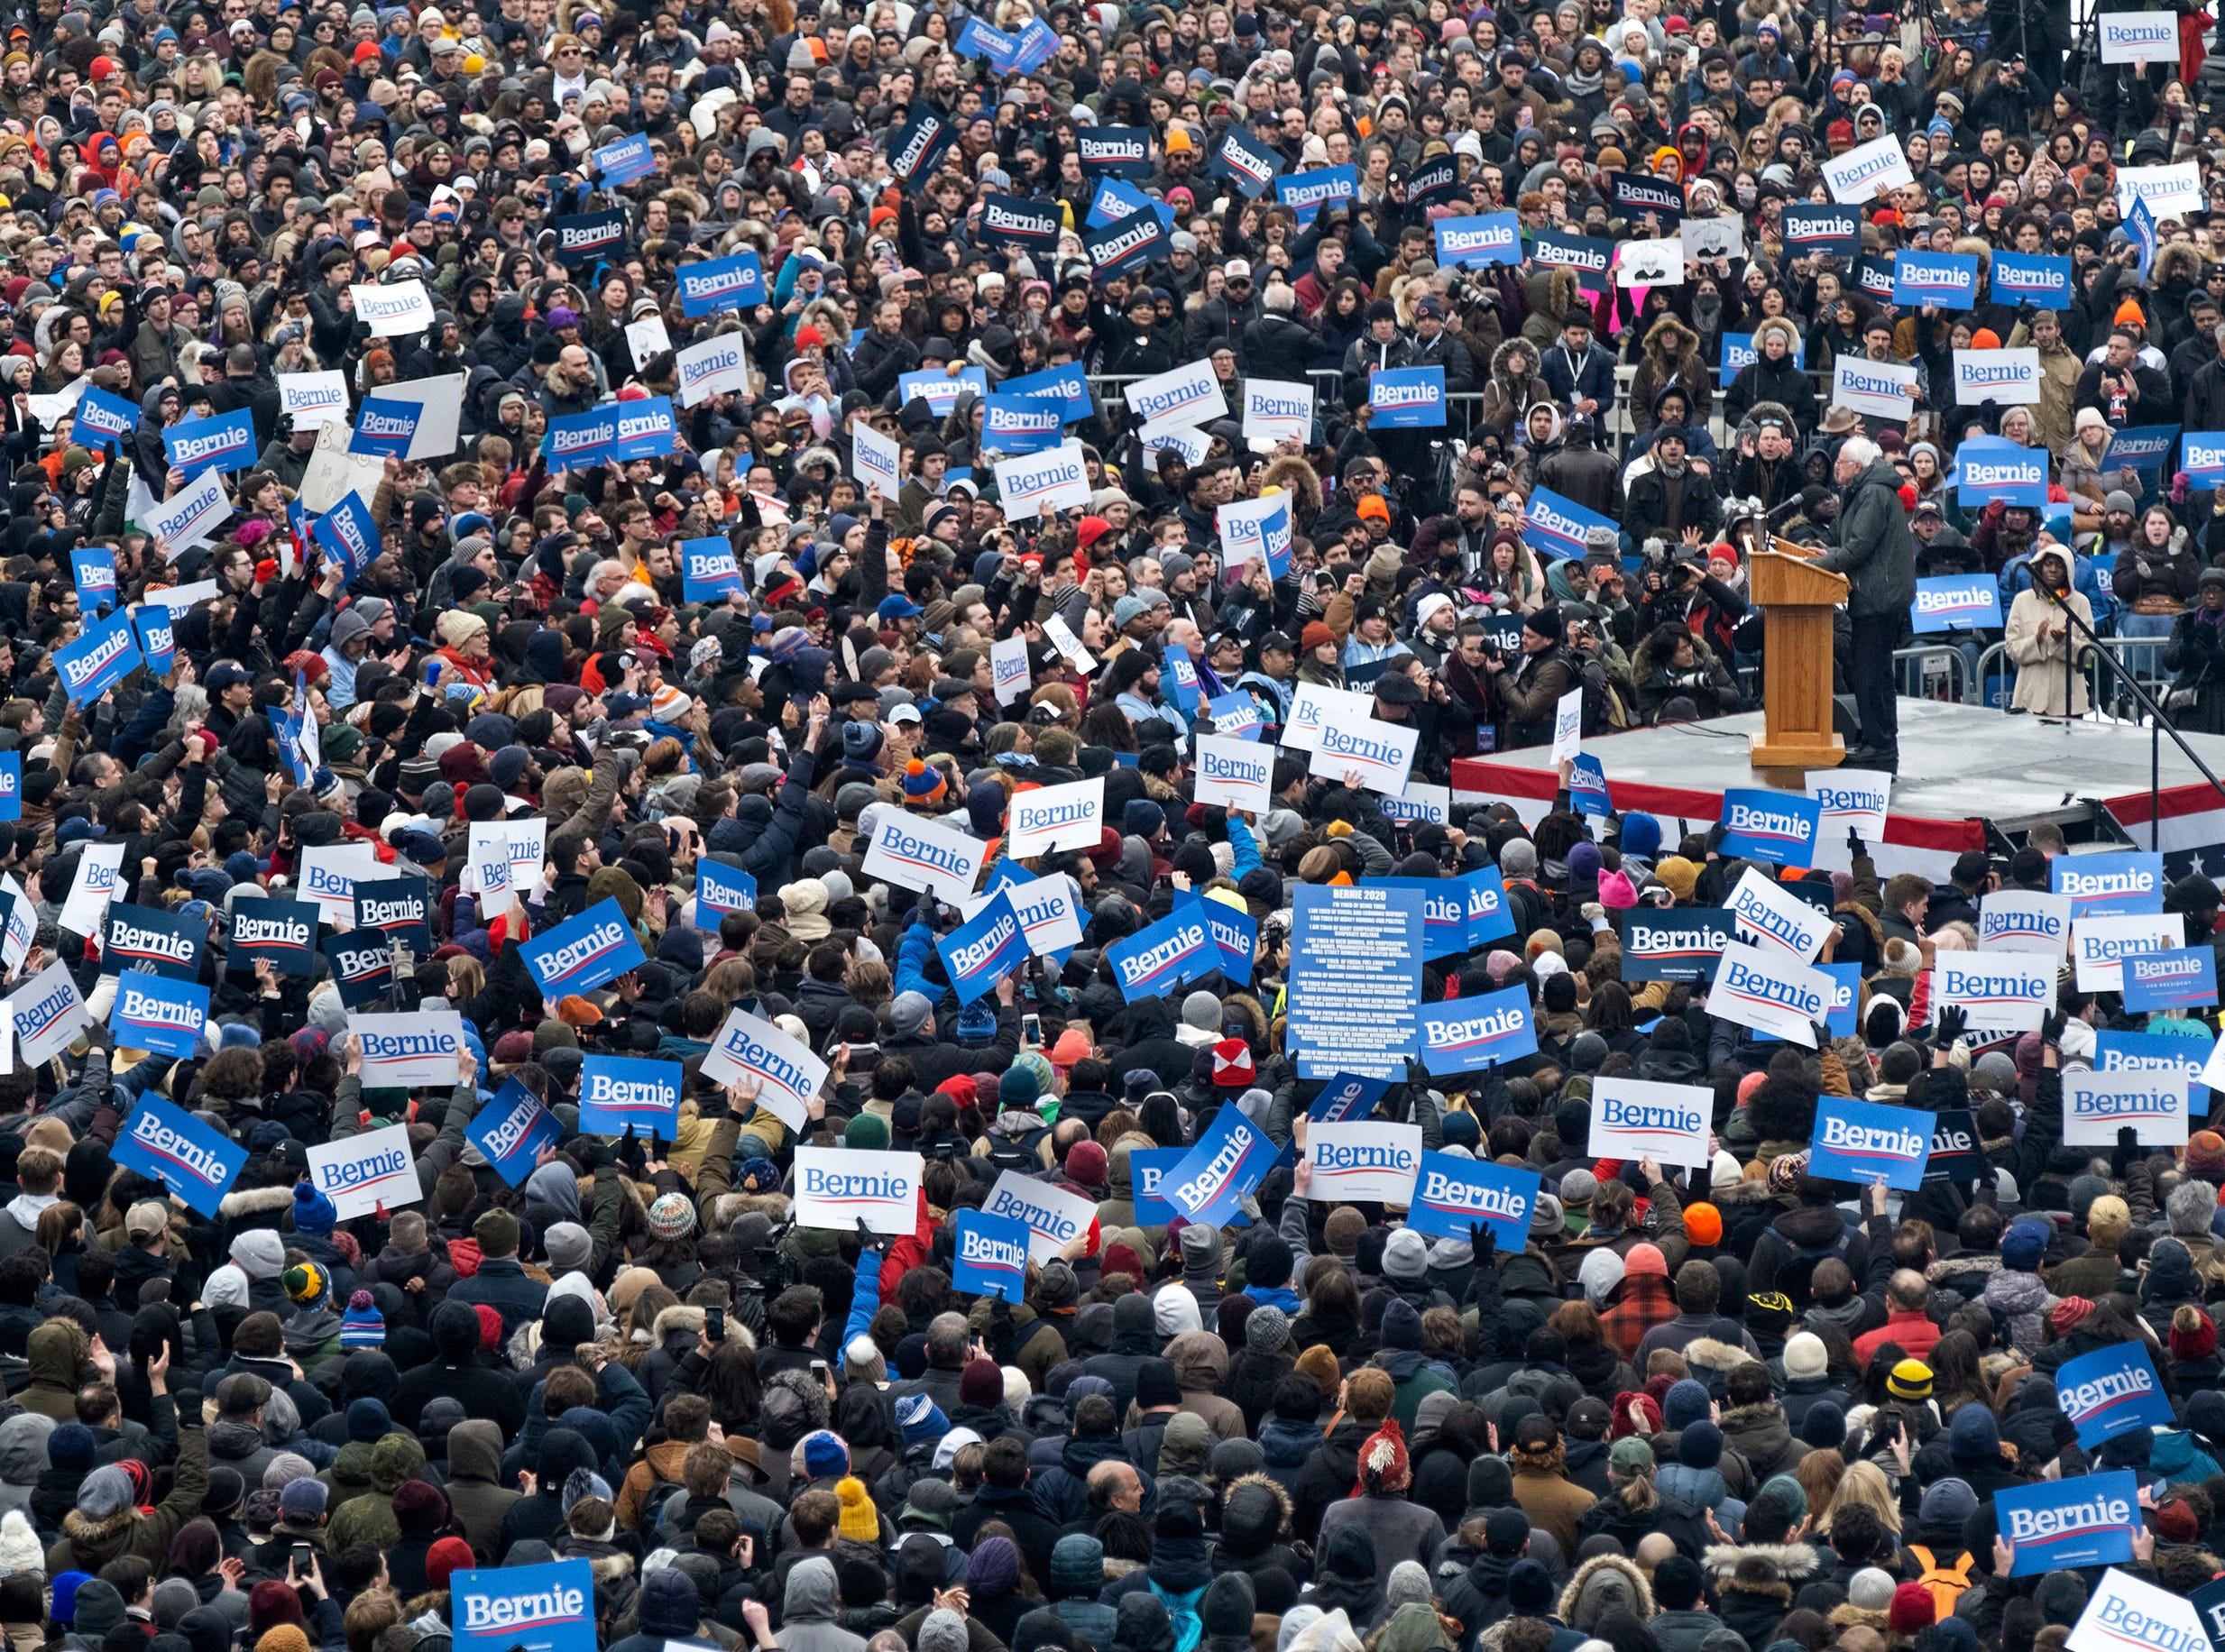 Sen. Bernie Sanders, I-Vt., is surrounded by supporters as he kicks off his second presidential campaign Saturday, March 2, 2019, in the Brooklyn borough of New York.